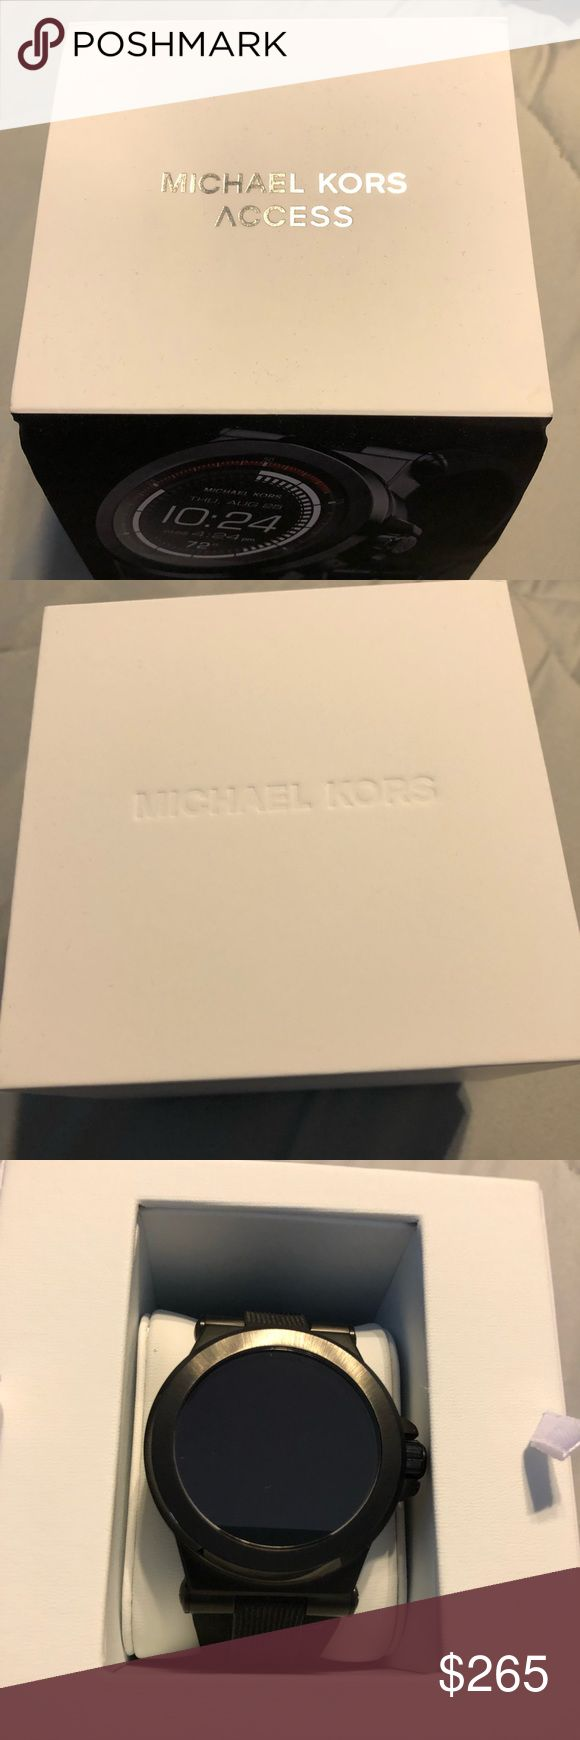 ⭐️MICHAEL KORS SMART WATCH⭐️ Hi. This is a brand new ( only wore once, didn't pair well with my husbands iPhone. ) Michael Kors Smart Watch. It's made more for android imo. It comes with box and paperwork. *Price is firm* KORS Michael Kors Bags